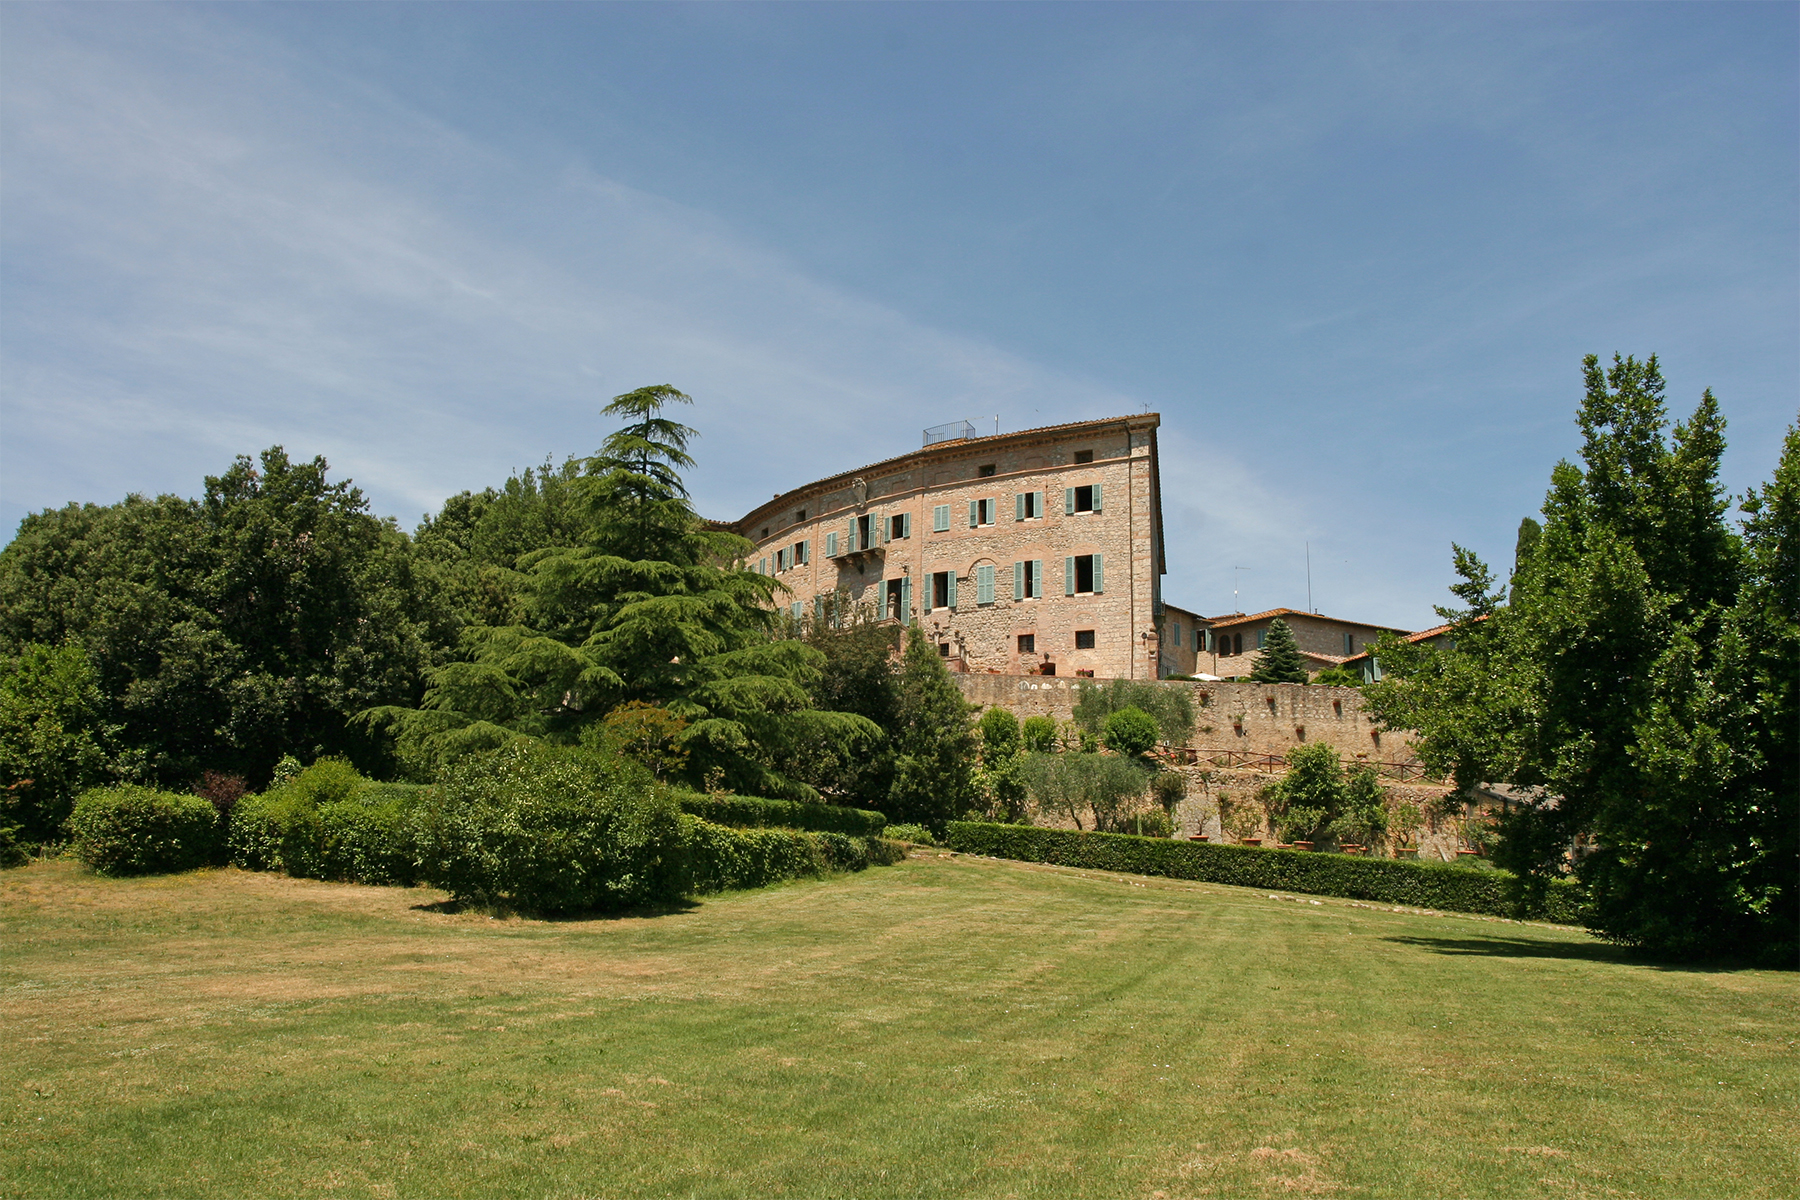 Property For Sale at Splendid Castle near Siena